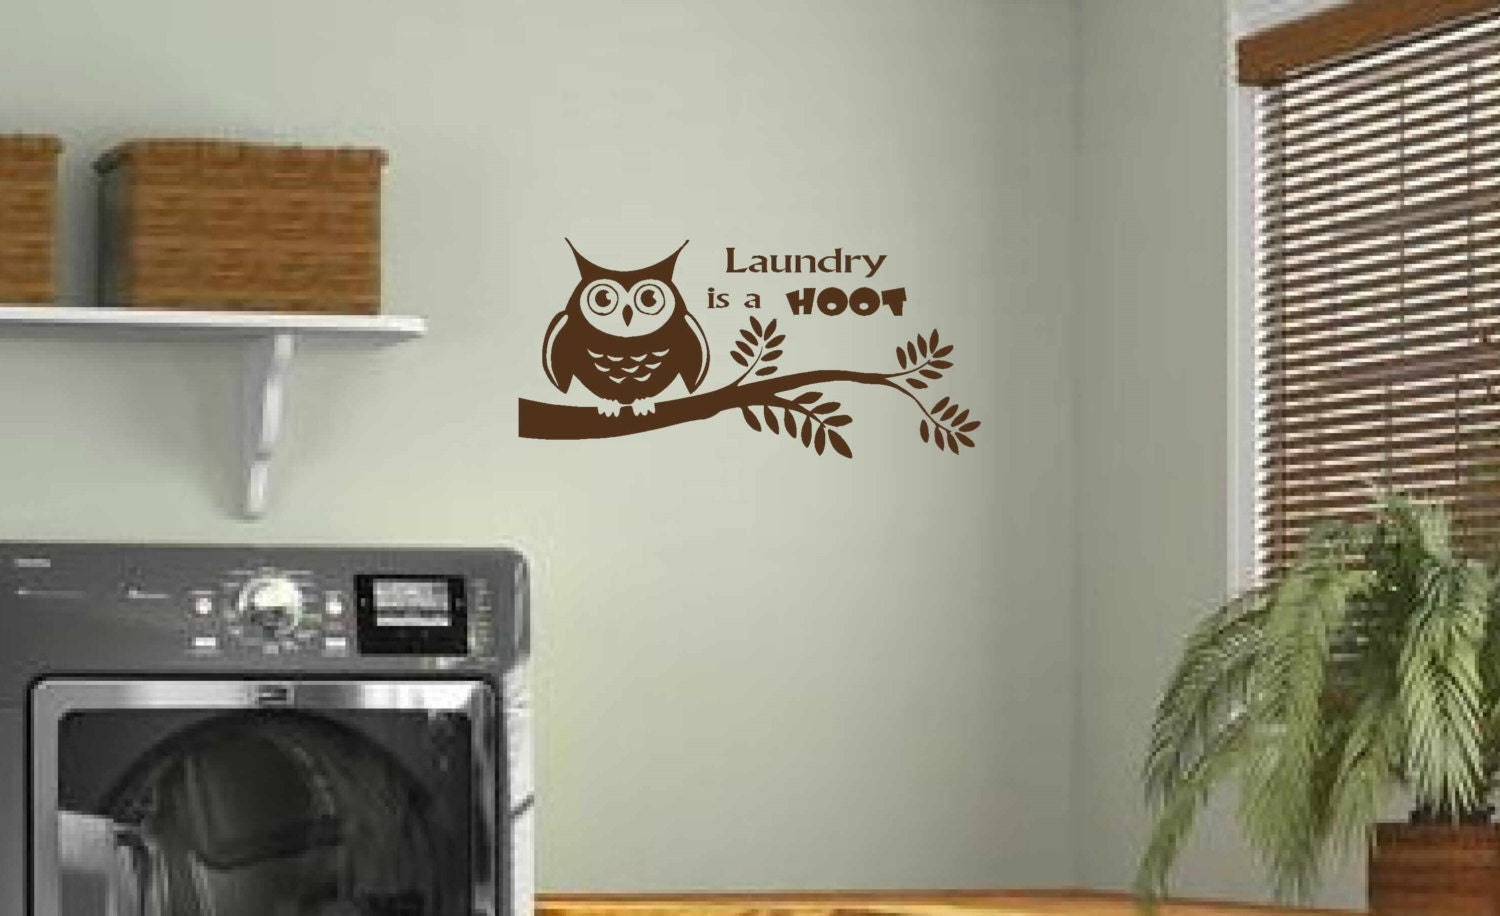 Laundry Wall Decal Laundry Room Decor Laundry Is A HOOT